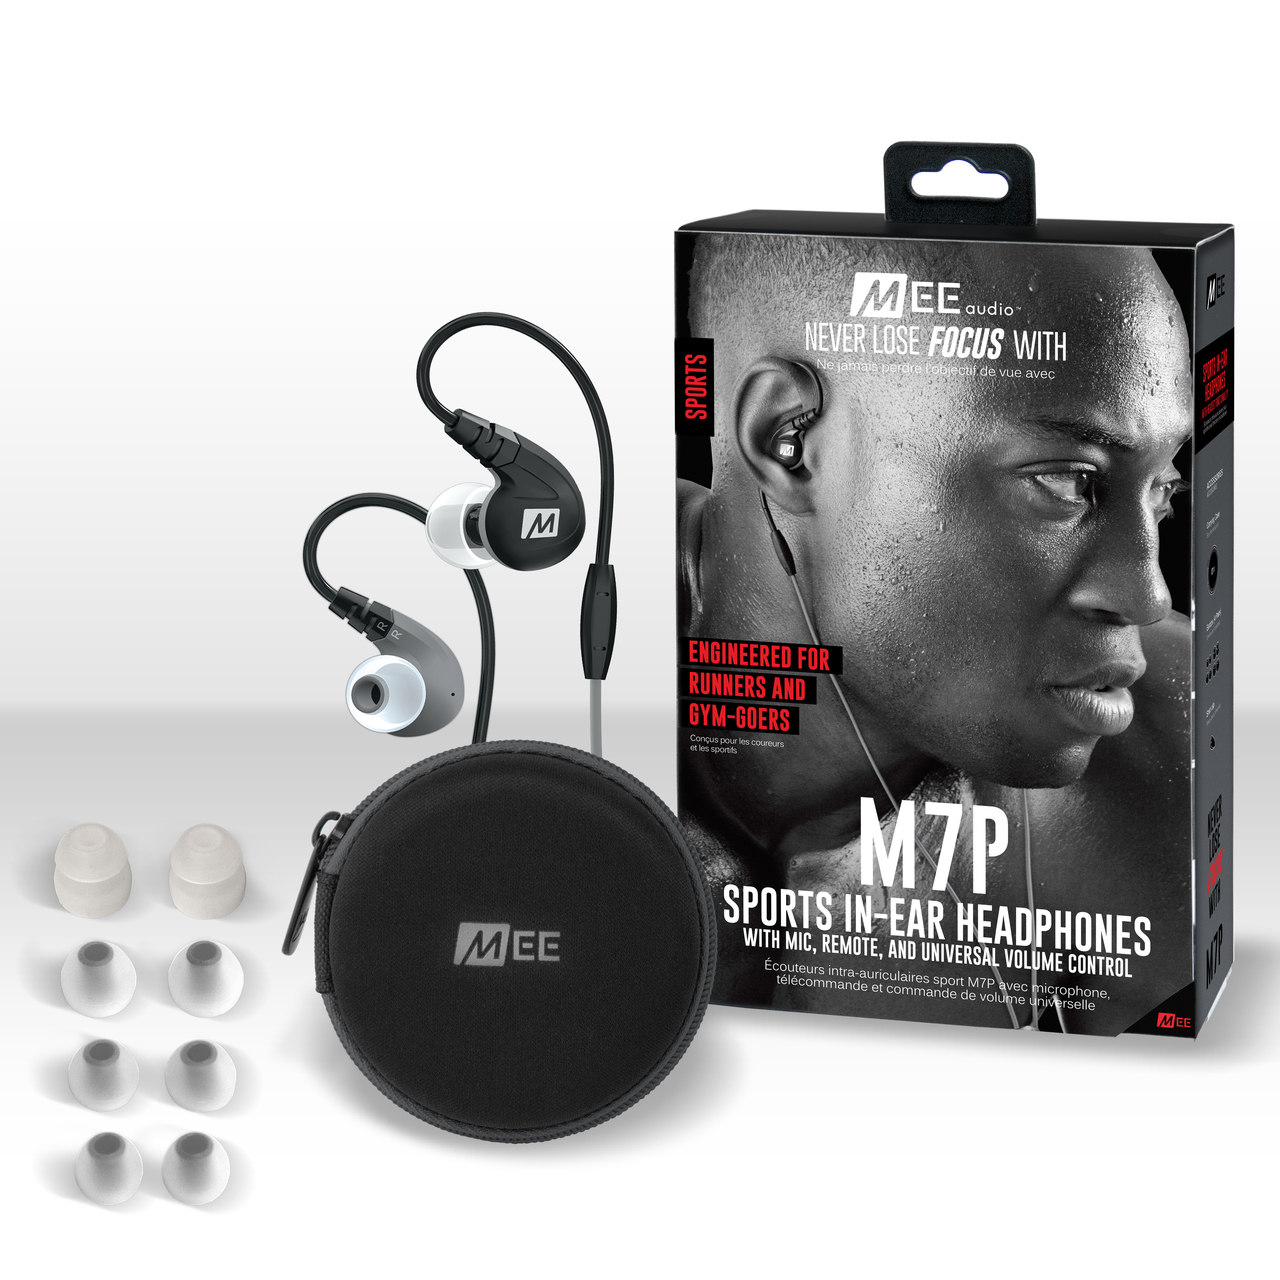 MEEAUDIO M7P SECURE-FIT SPORTS IN-EAR HEADPHONES WITH MIC, REMOTE, AND UNIVERSAL VOLUME - BLACK - EP-M7P-BK-MEE